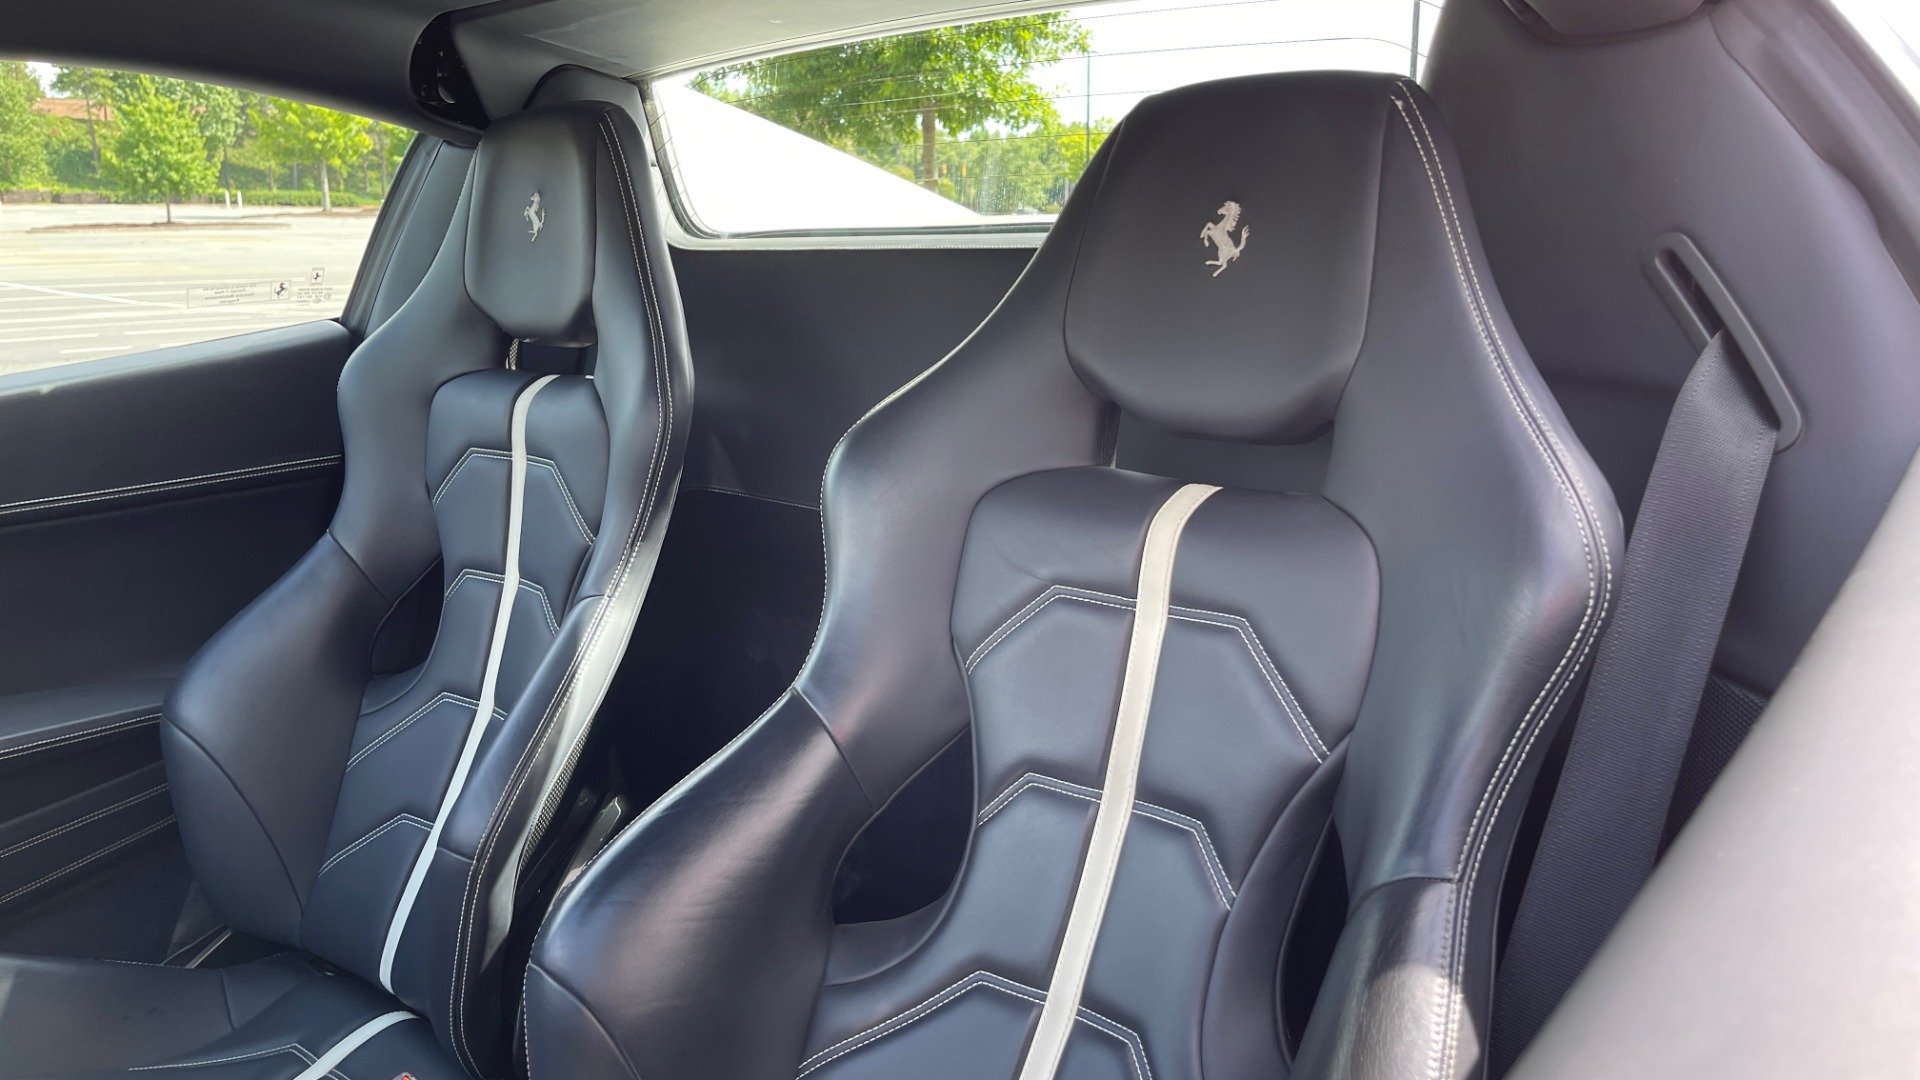 Used 2014 Ferrari 458 ITALIA SPIDER 570HP / F1 AUTO / CF SEATS / CARBON BRAKES / REARVIEW for sale $249,999 at Formula Imports in Charlotte NC 28227 43